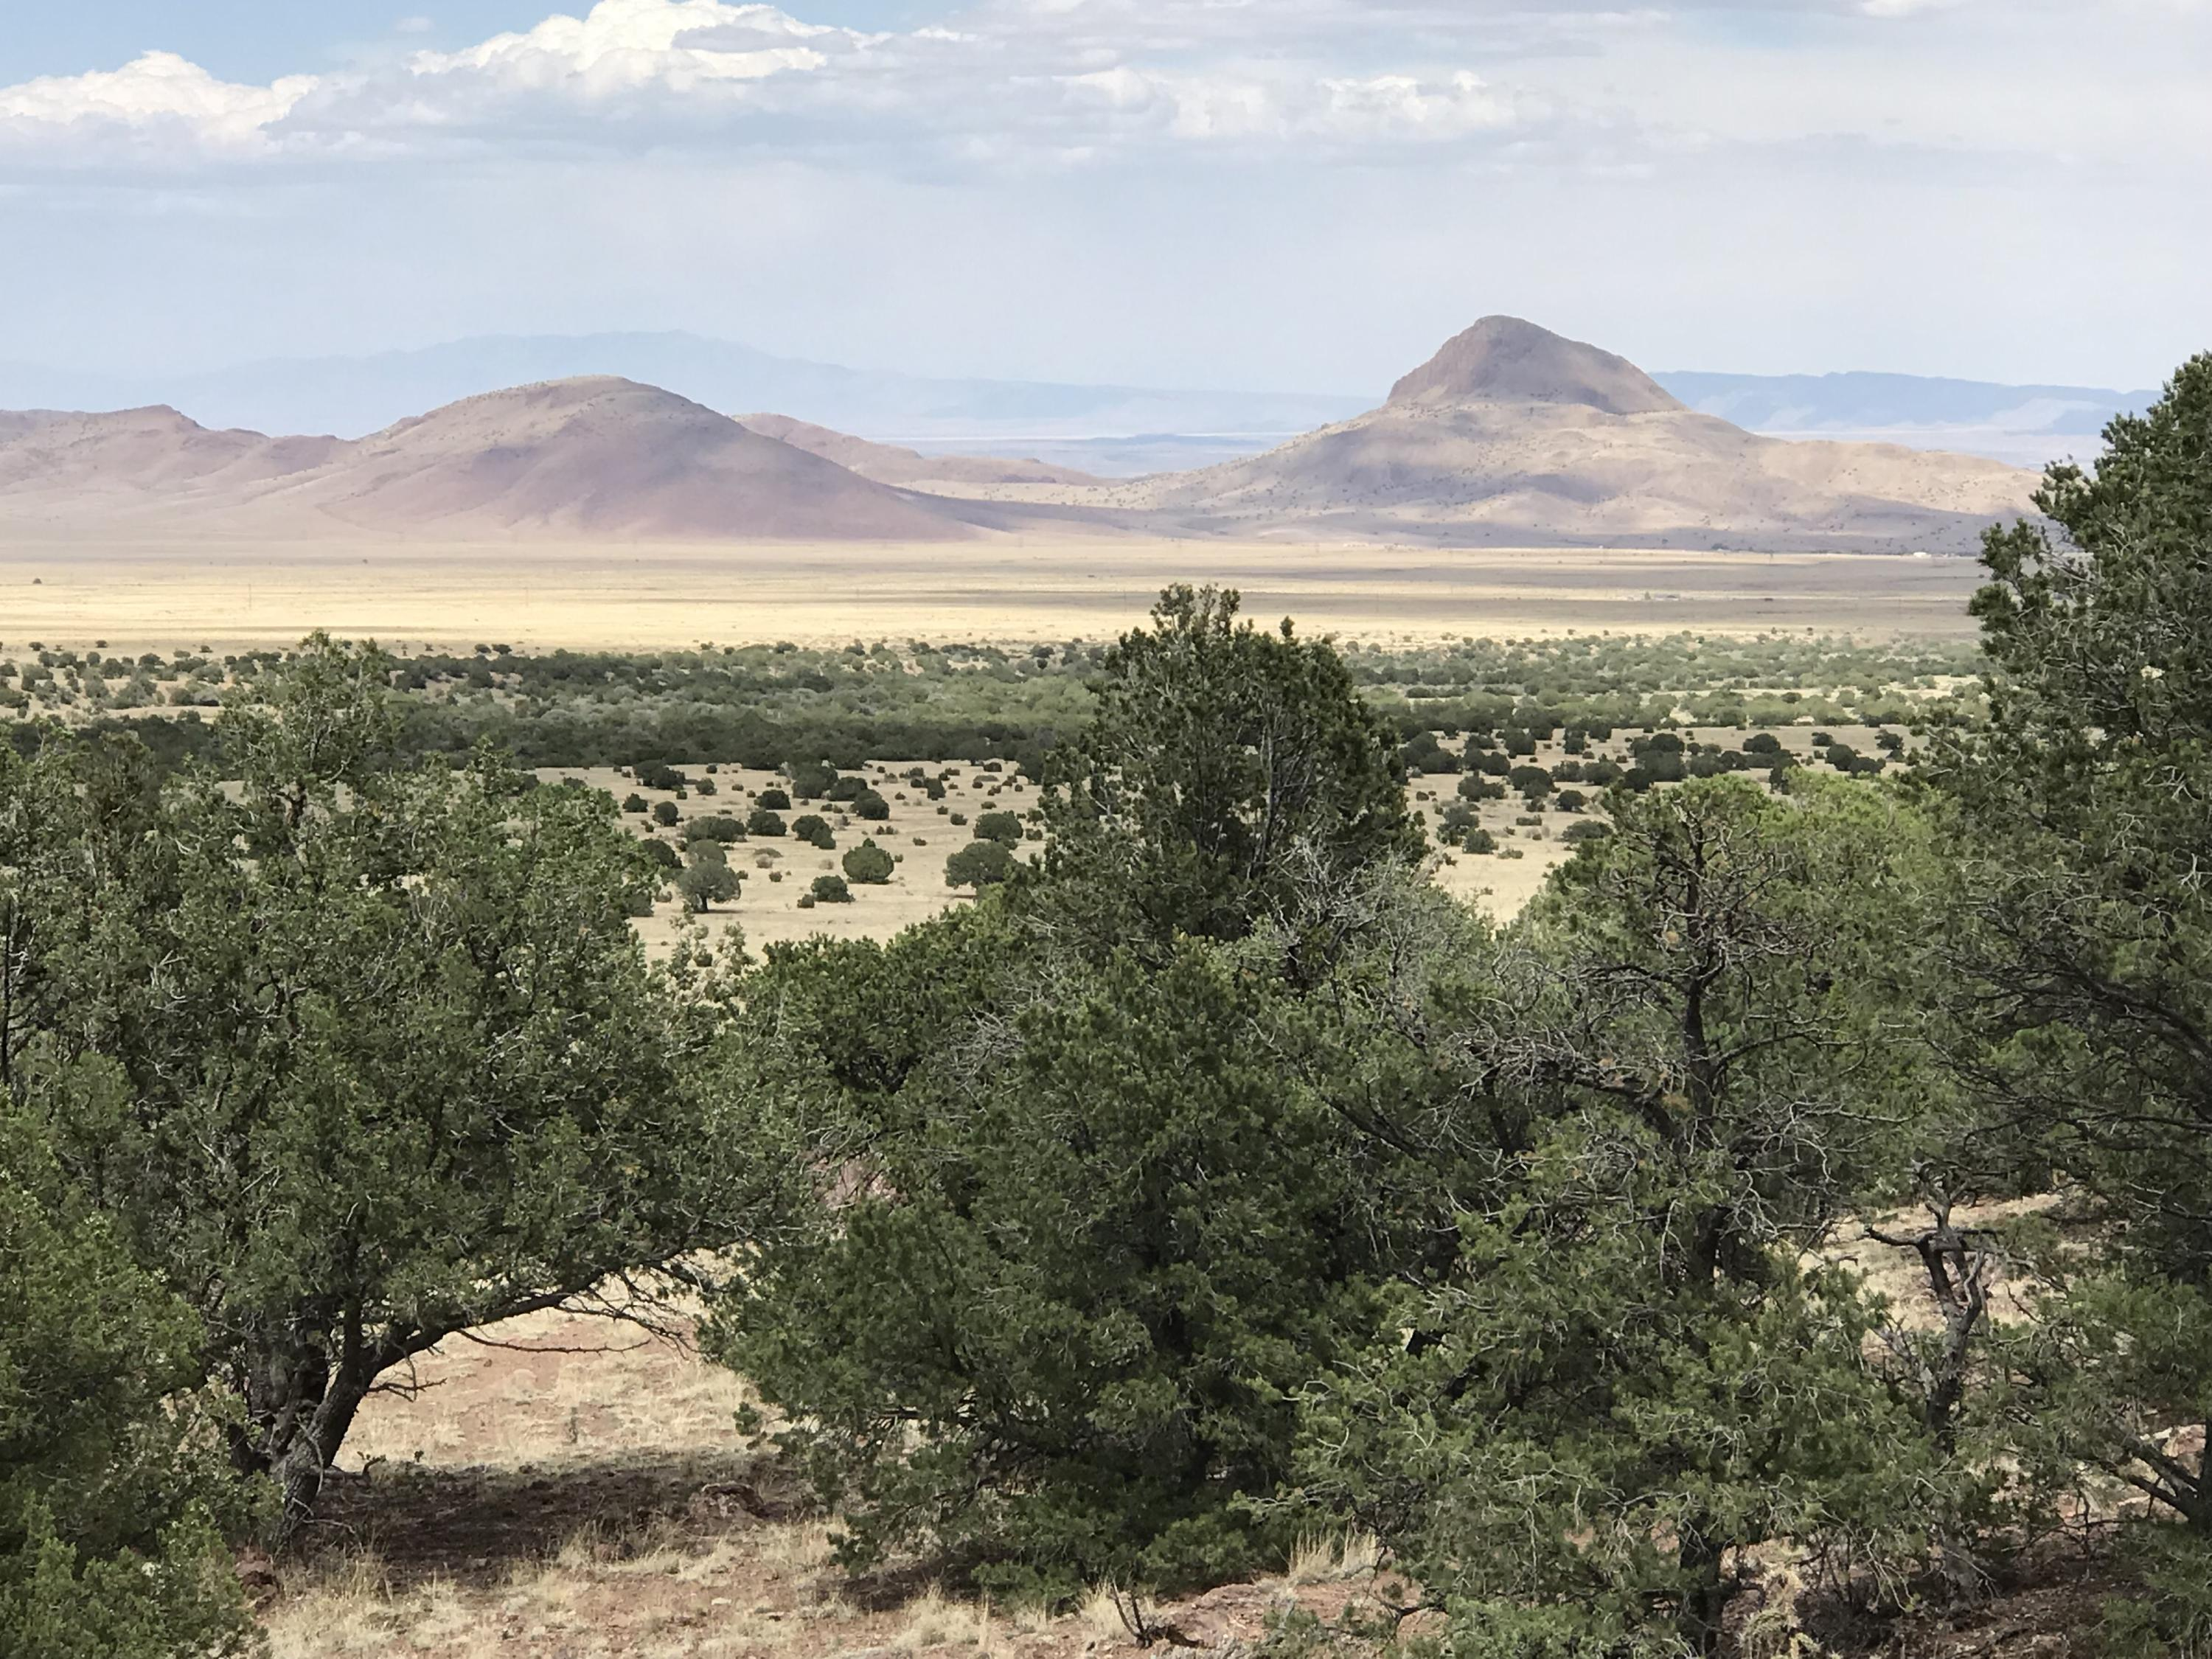 Water Canyon, Magdalena, NM 87825 - Magdalena, NM real estate listing